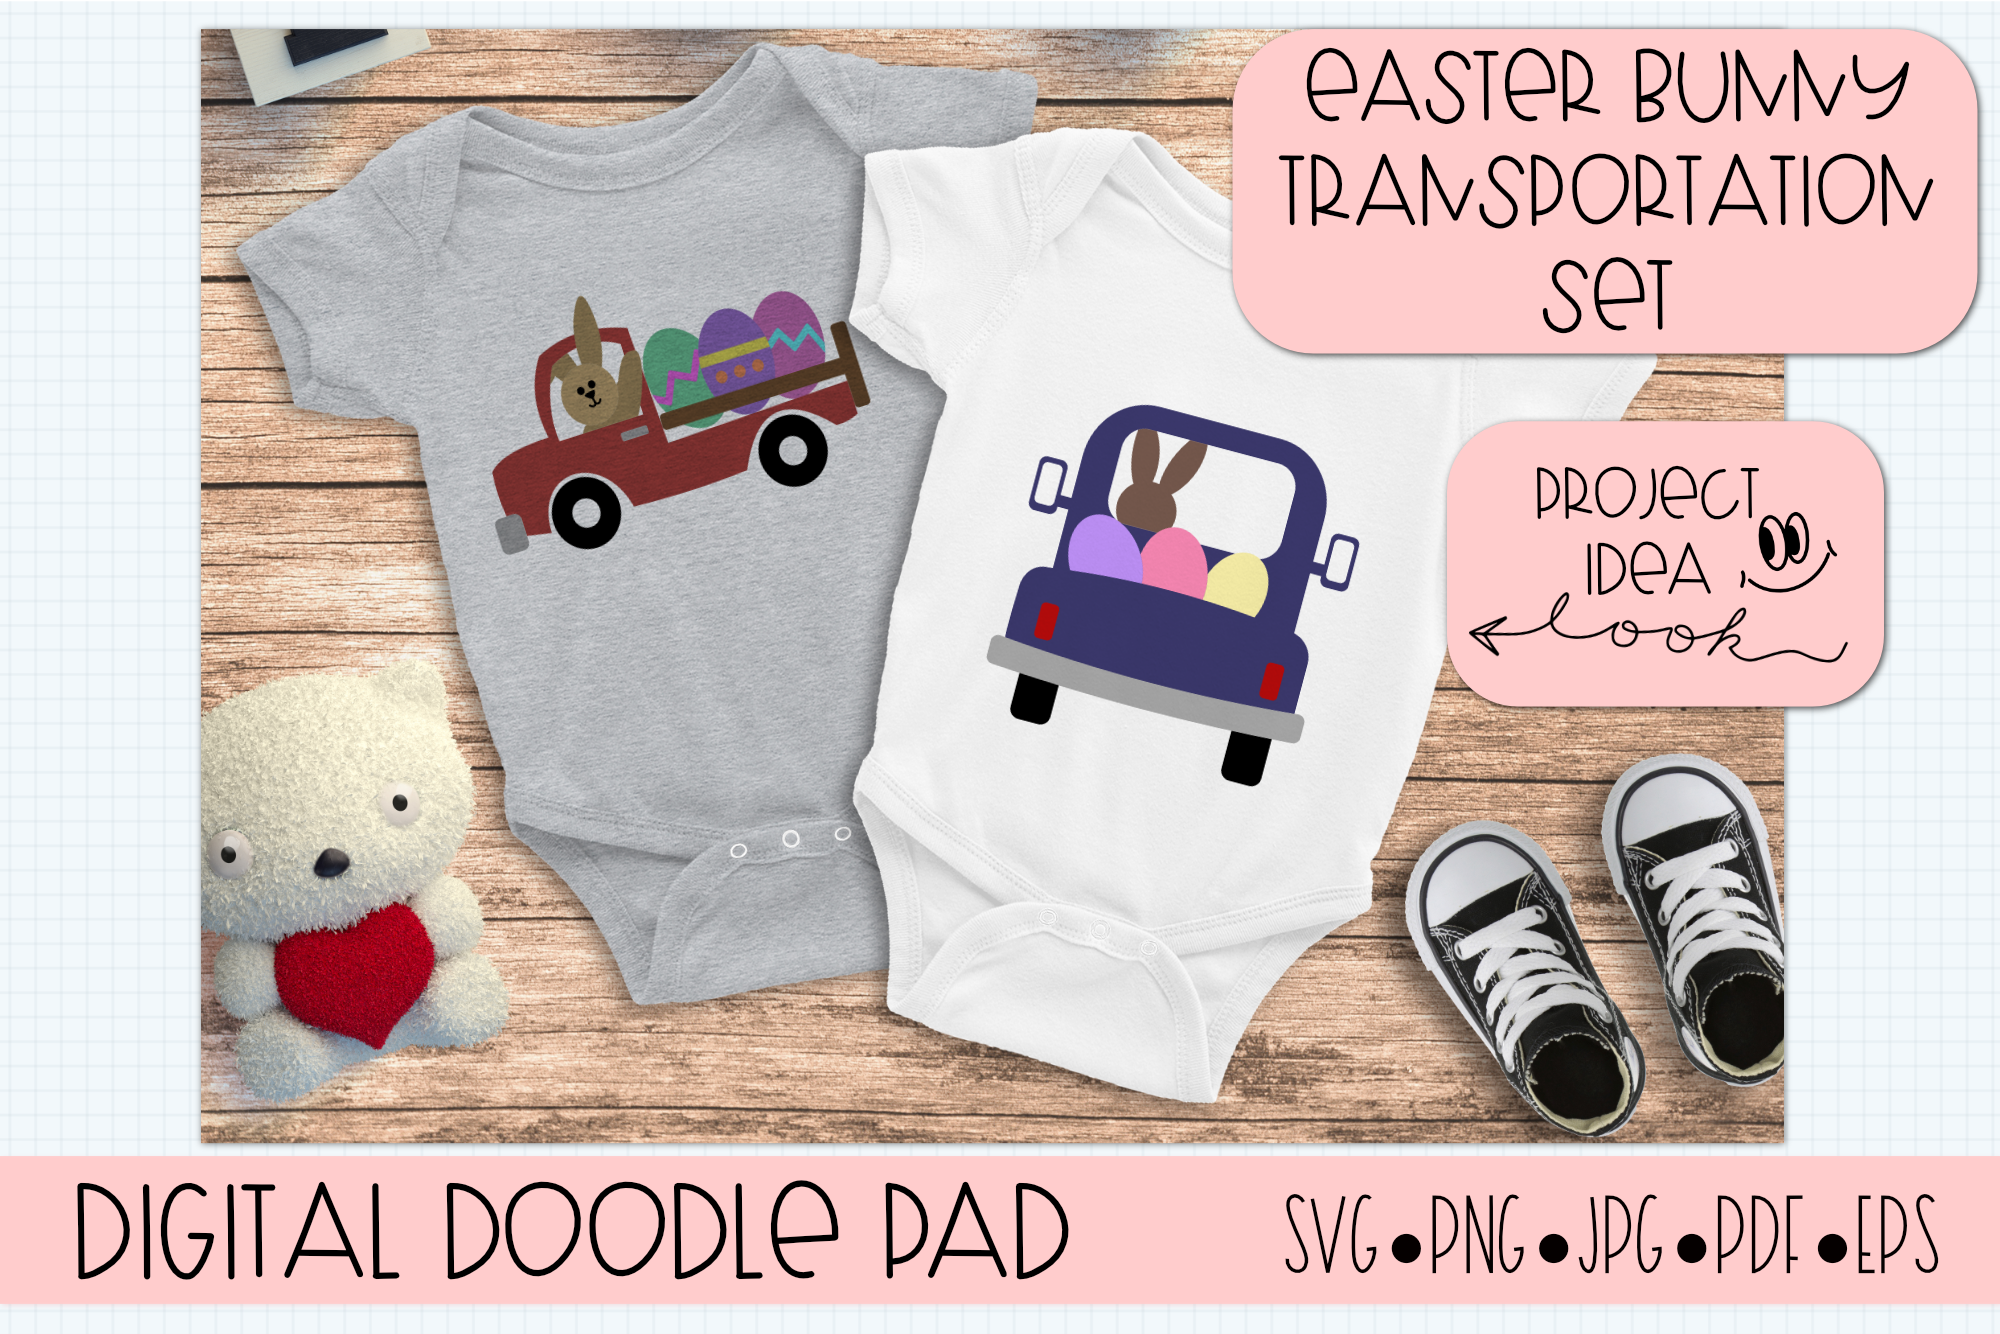 Easter Bunny Transportation Set - Cricut and Silhouette example image 2